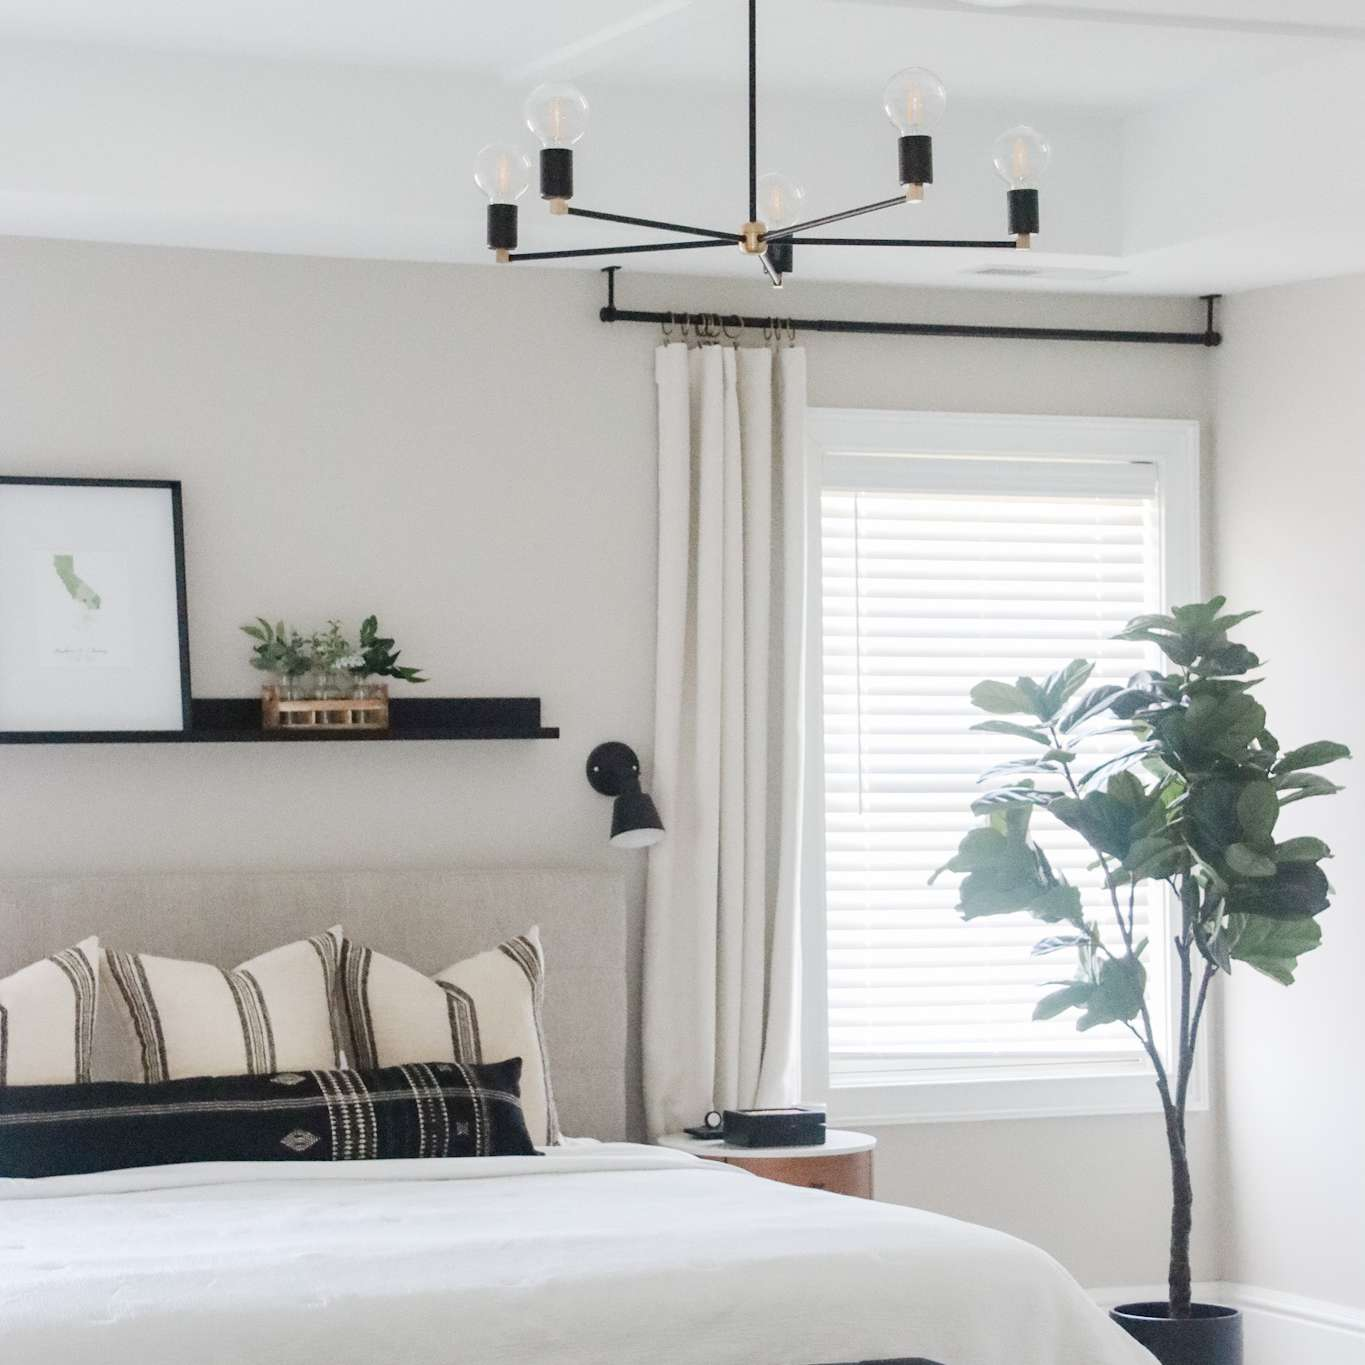 Coffered ceiling with a chandelier